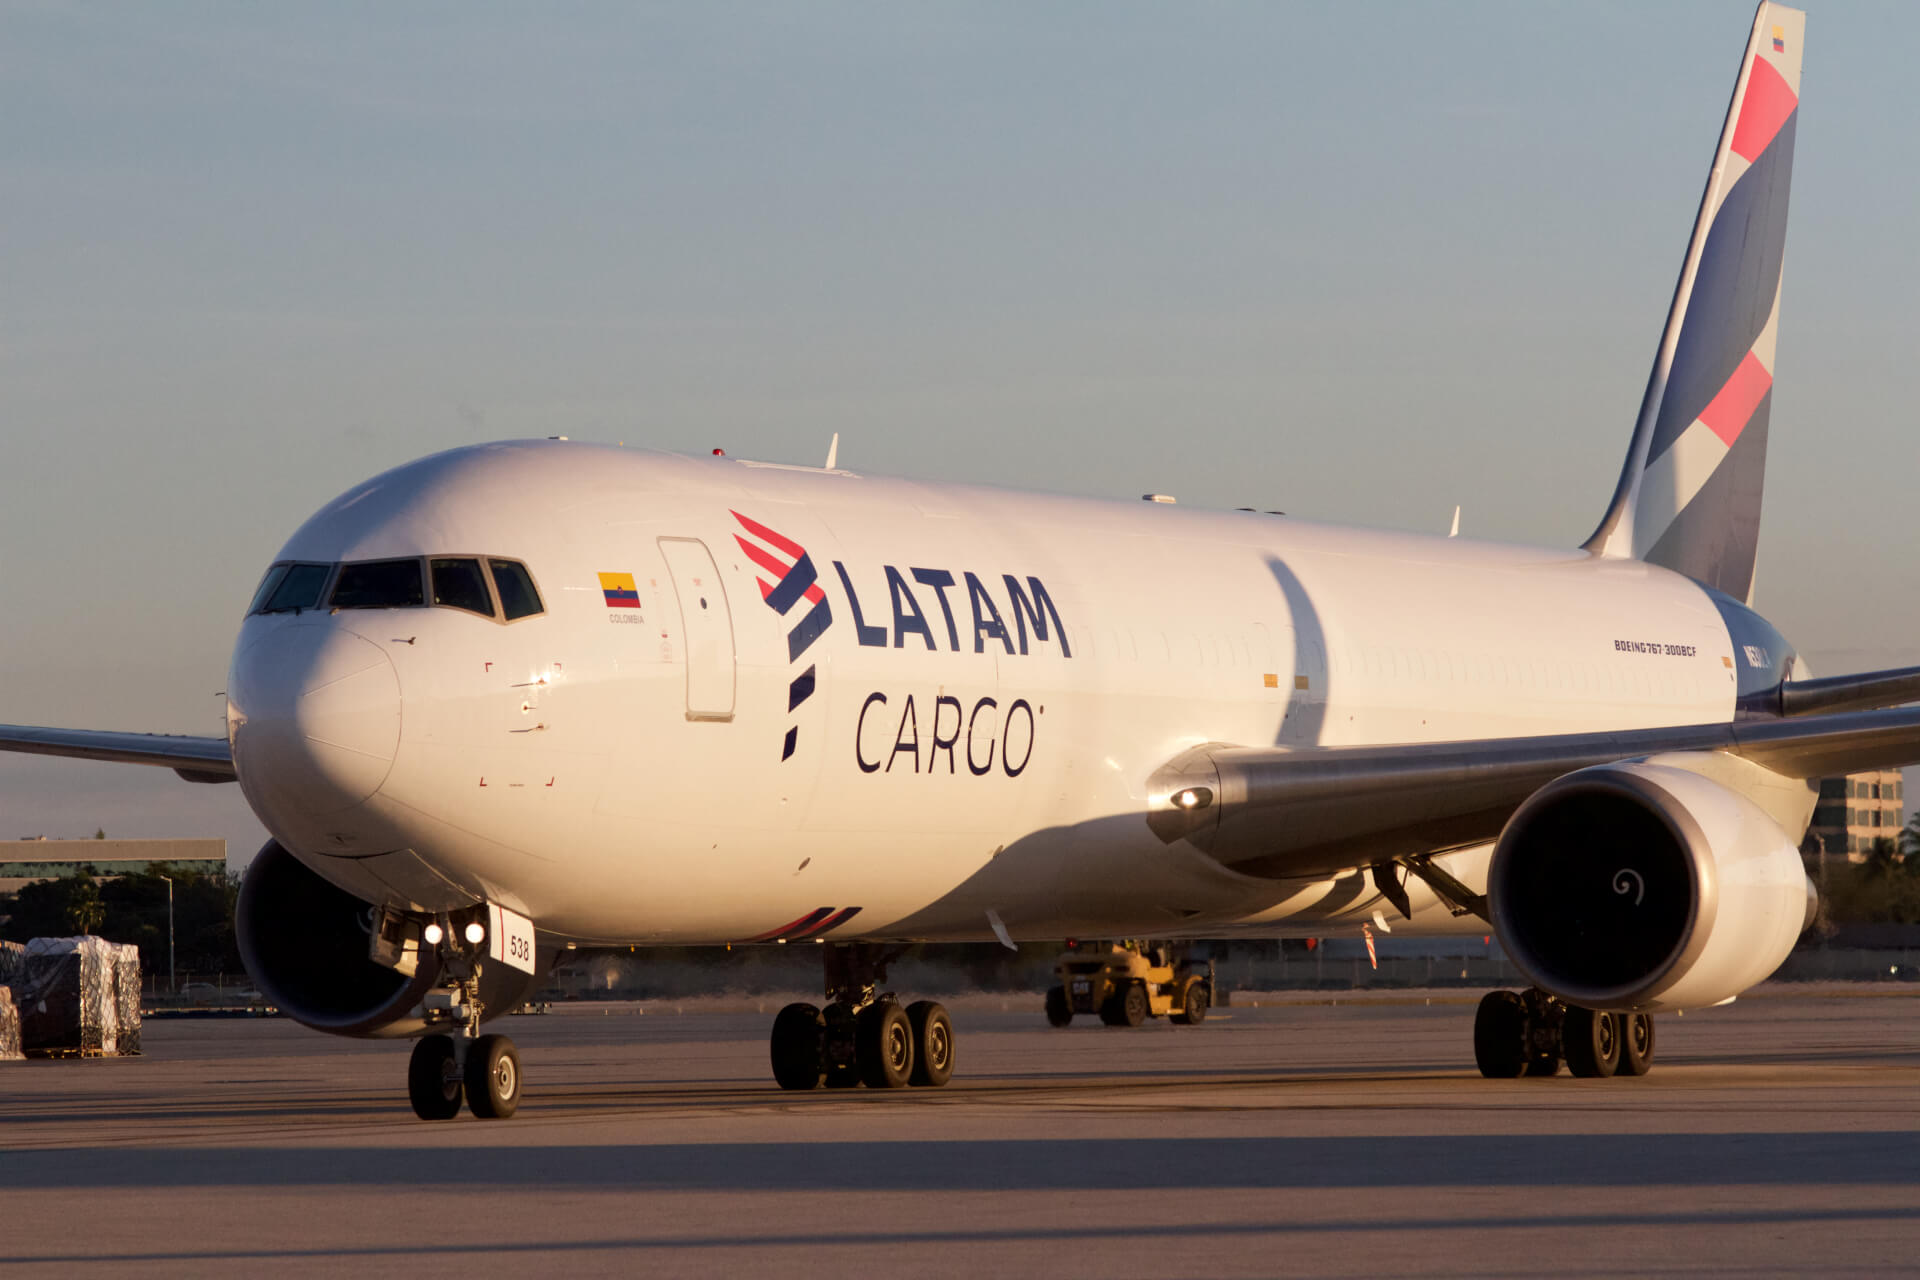 LATAM Cargo Group launches its 12th route from Miami to Brazil